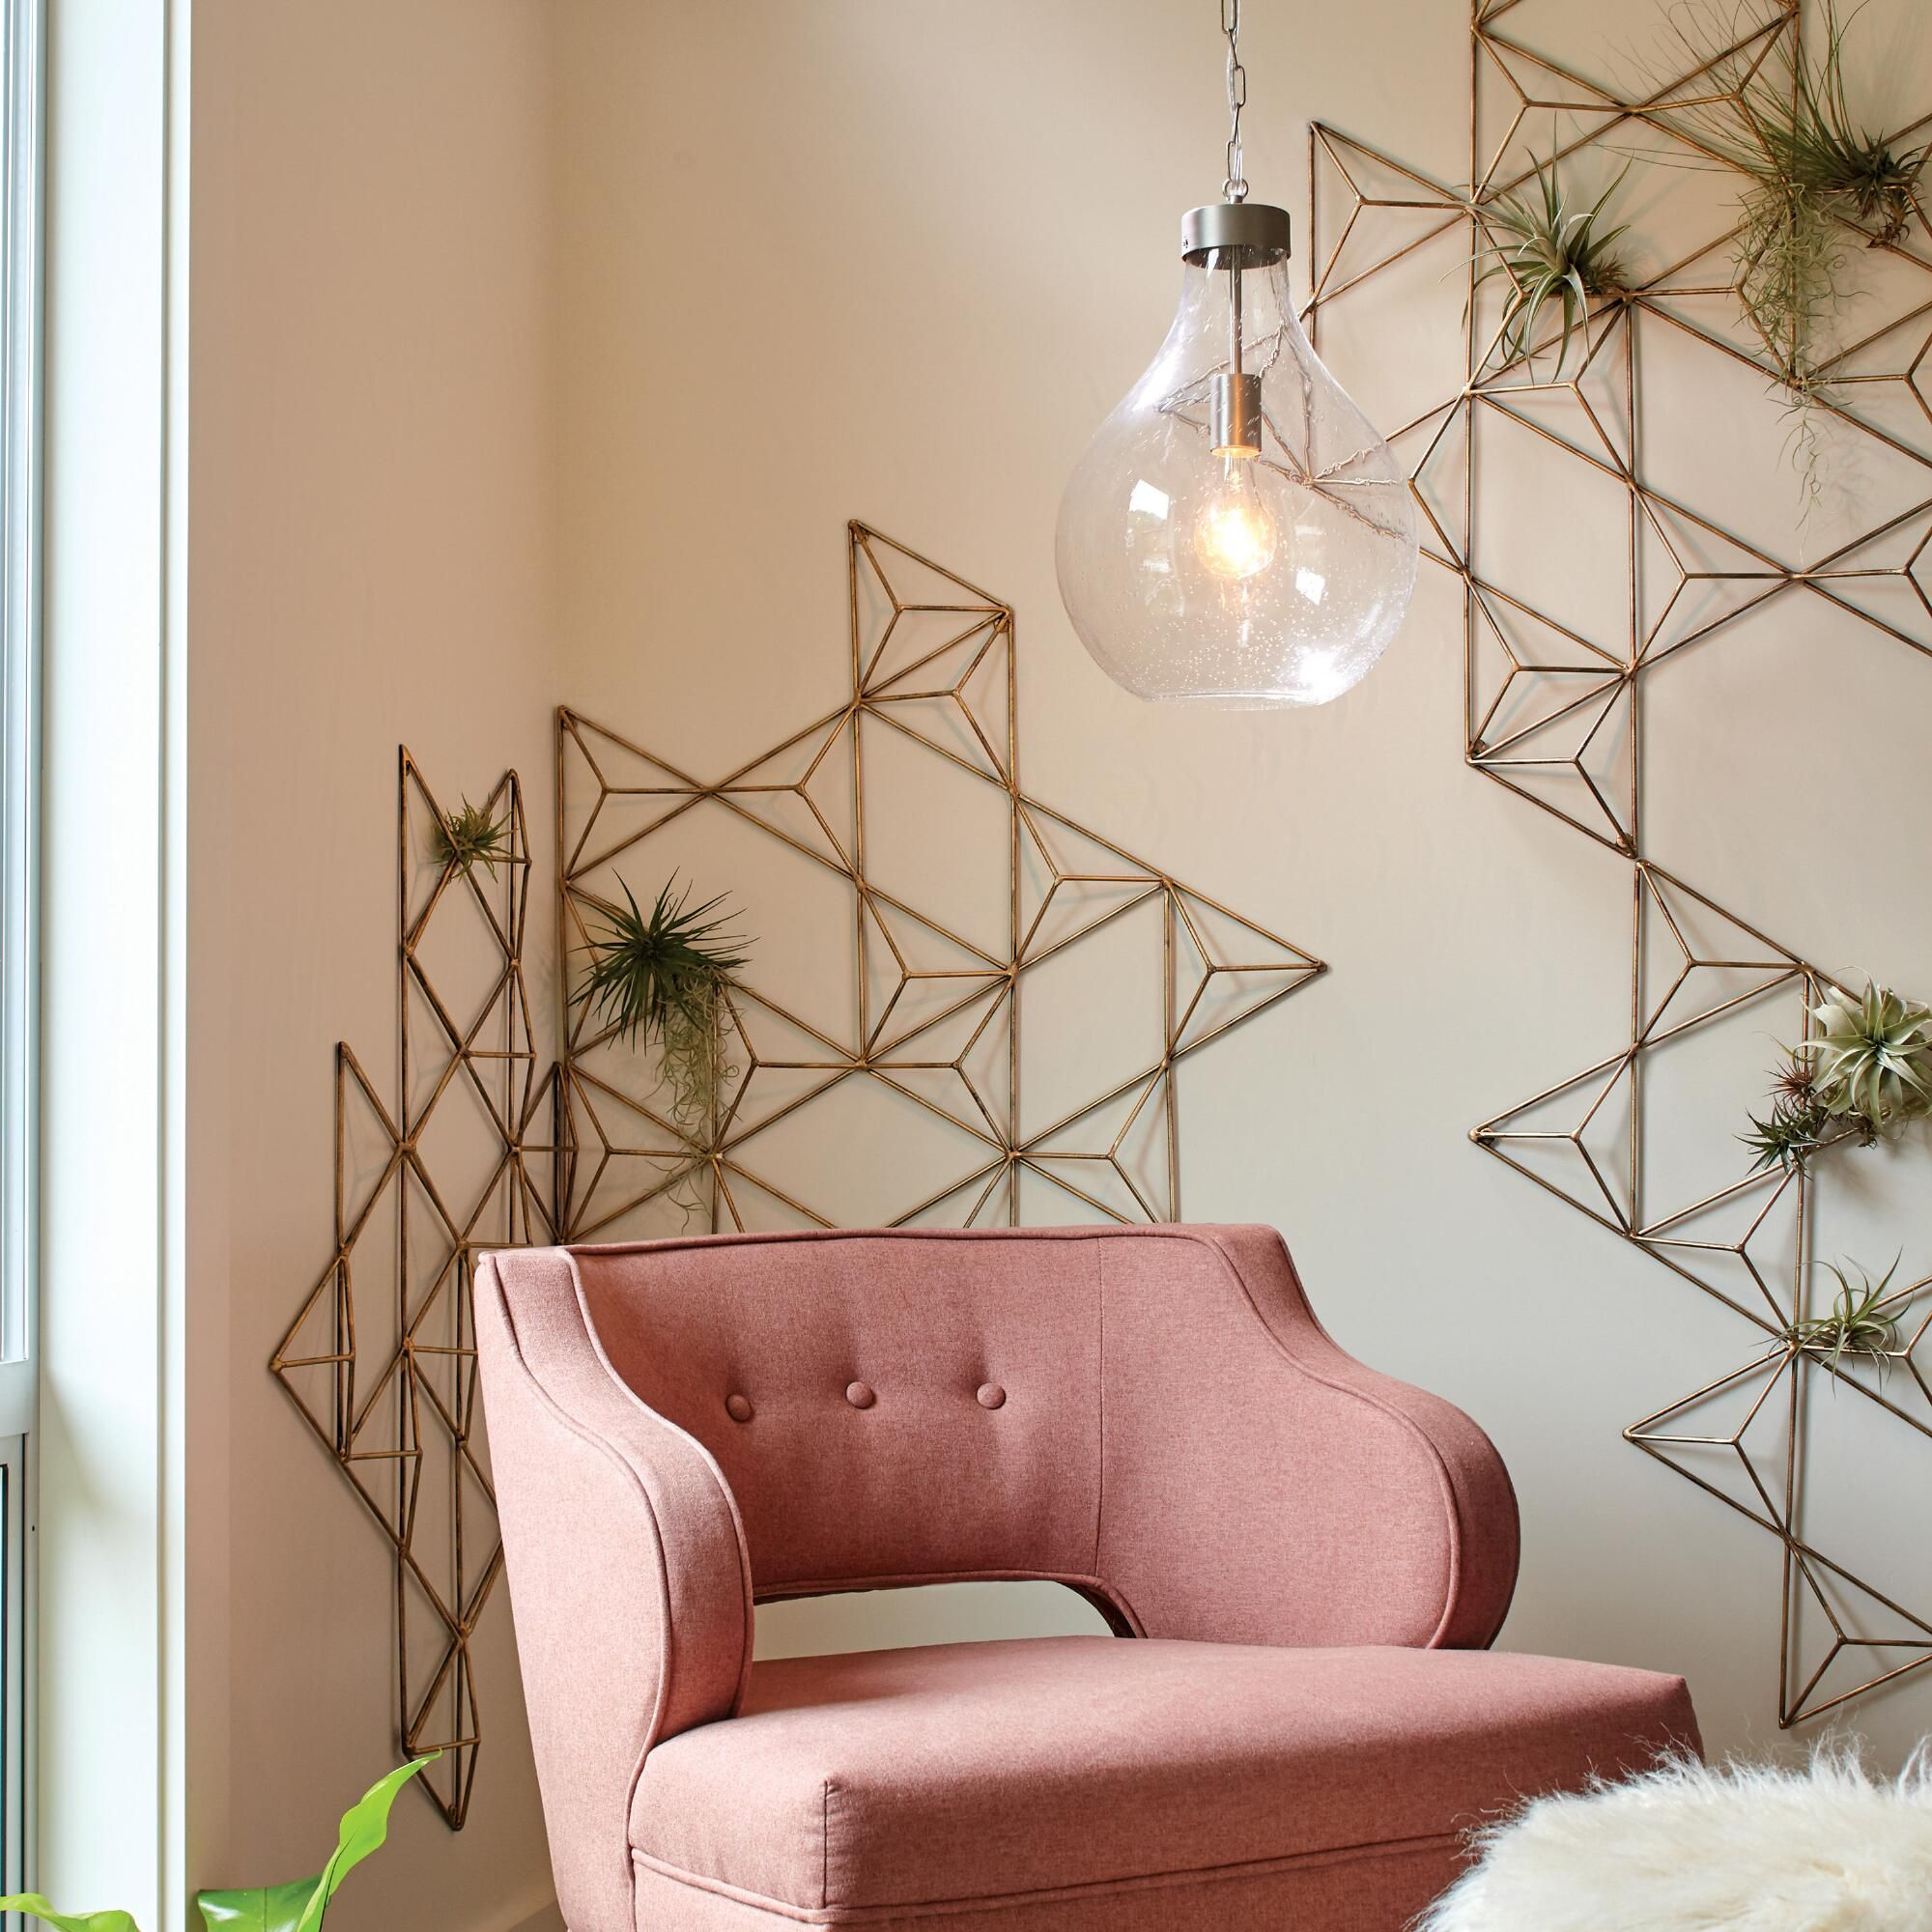 Handcrafted by indian artisans our threedimensional geometric wall